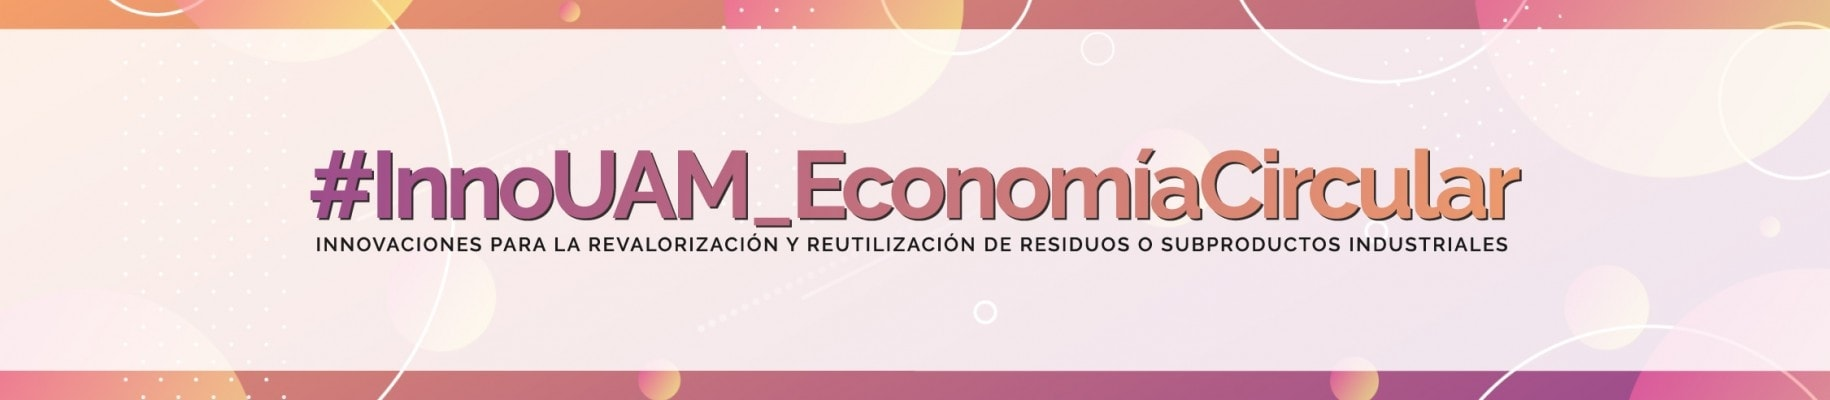 Logo with the name of the event, InnoUAM_EconomíaCircular, in which Ferrovial Servicios participates